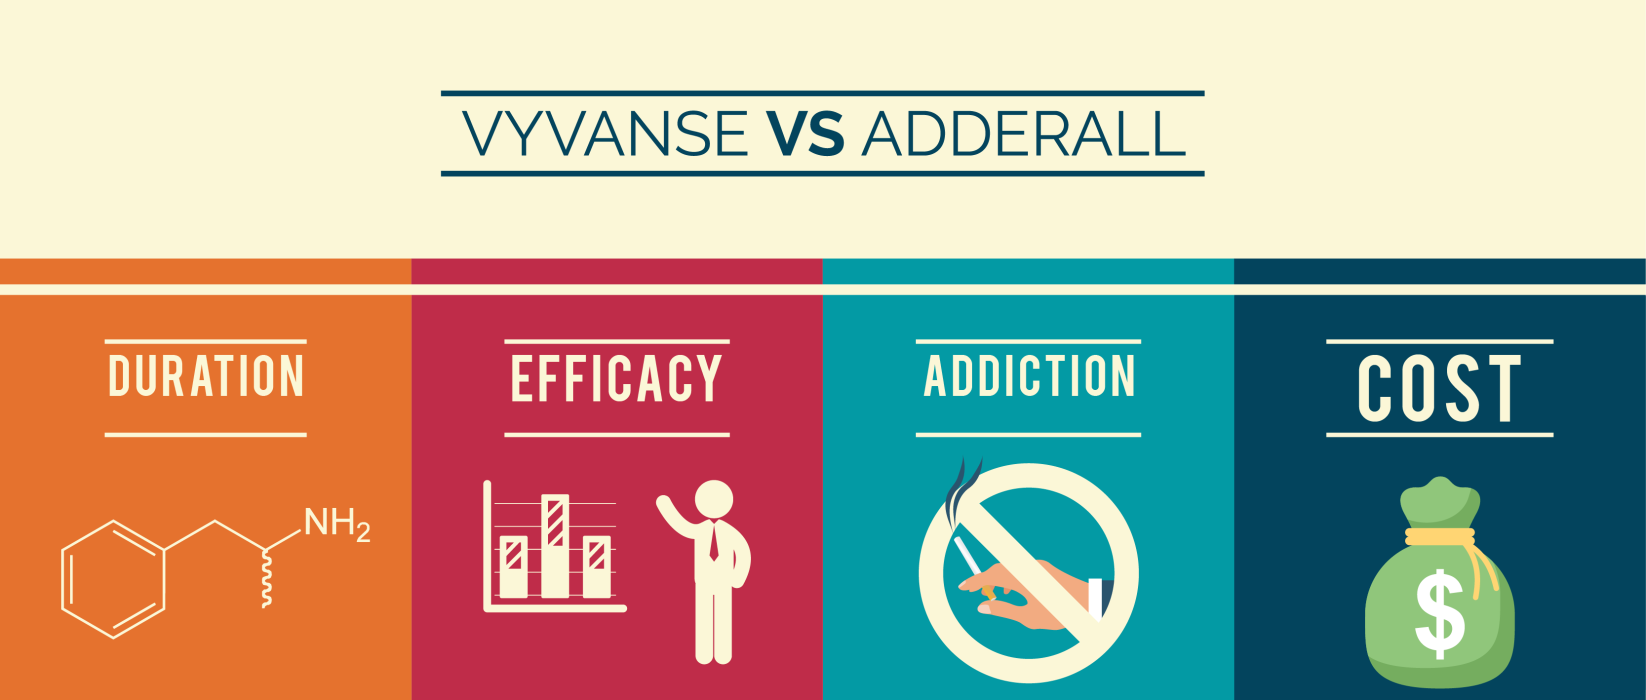 Vyvanse vs Adderall CostBenefit Analysis For ADHD